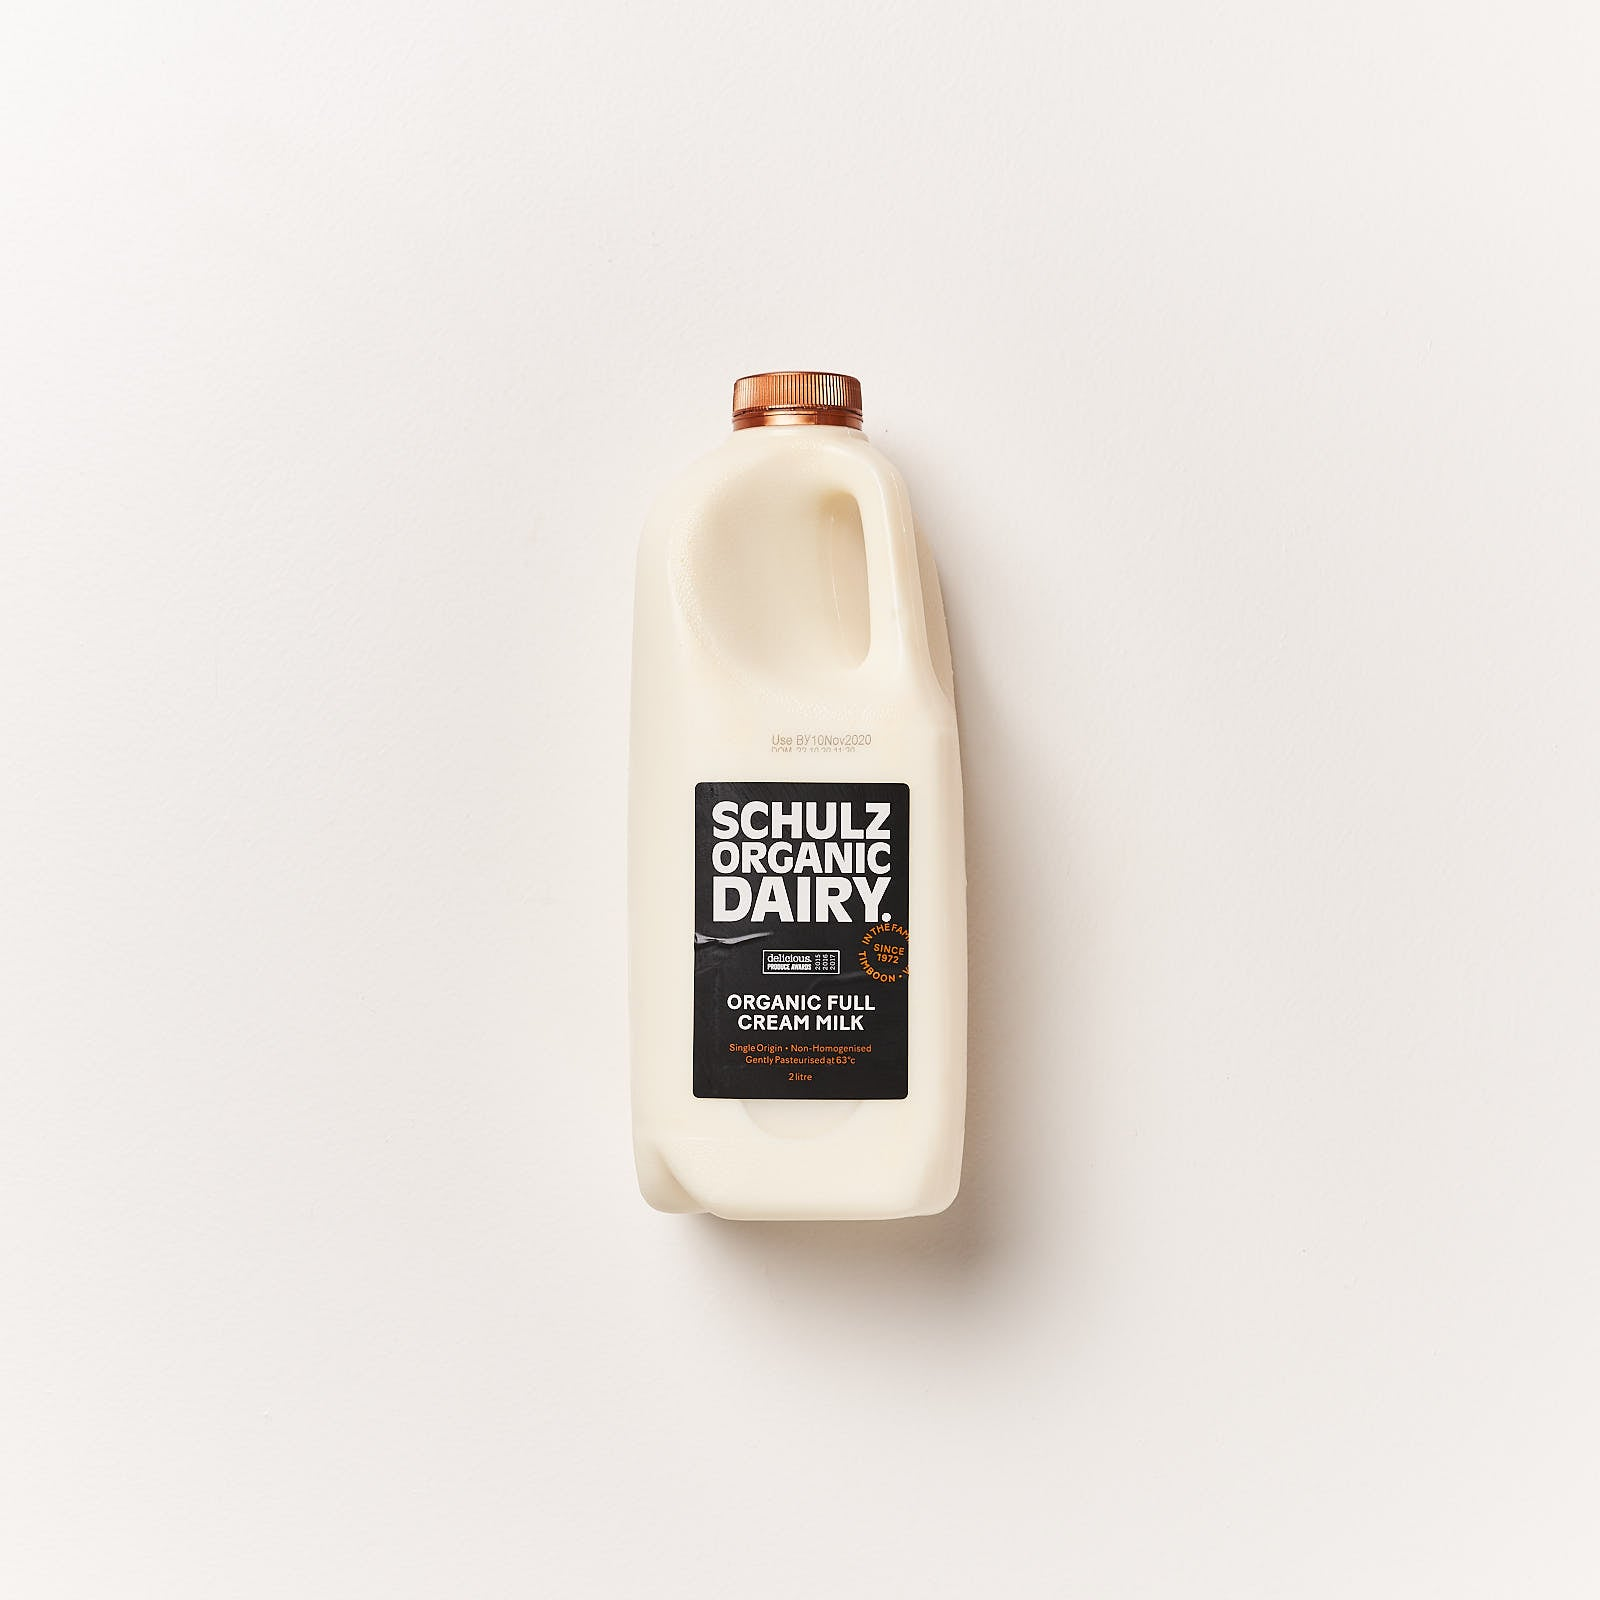 Schulz Organic Full Cream Milk